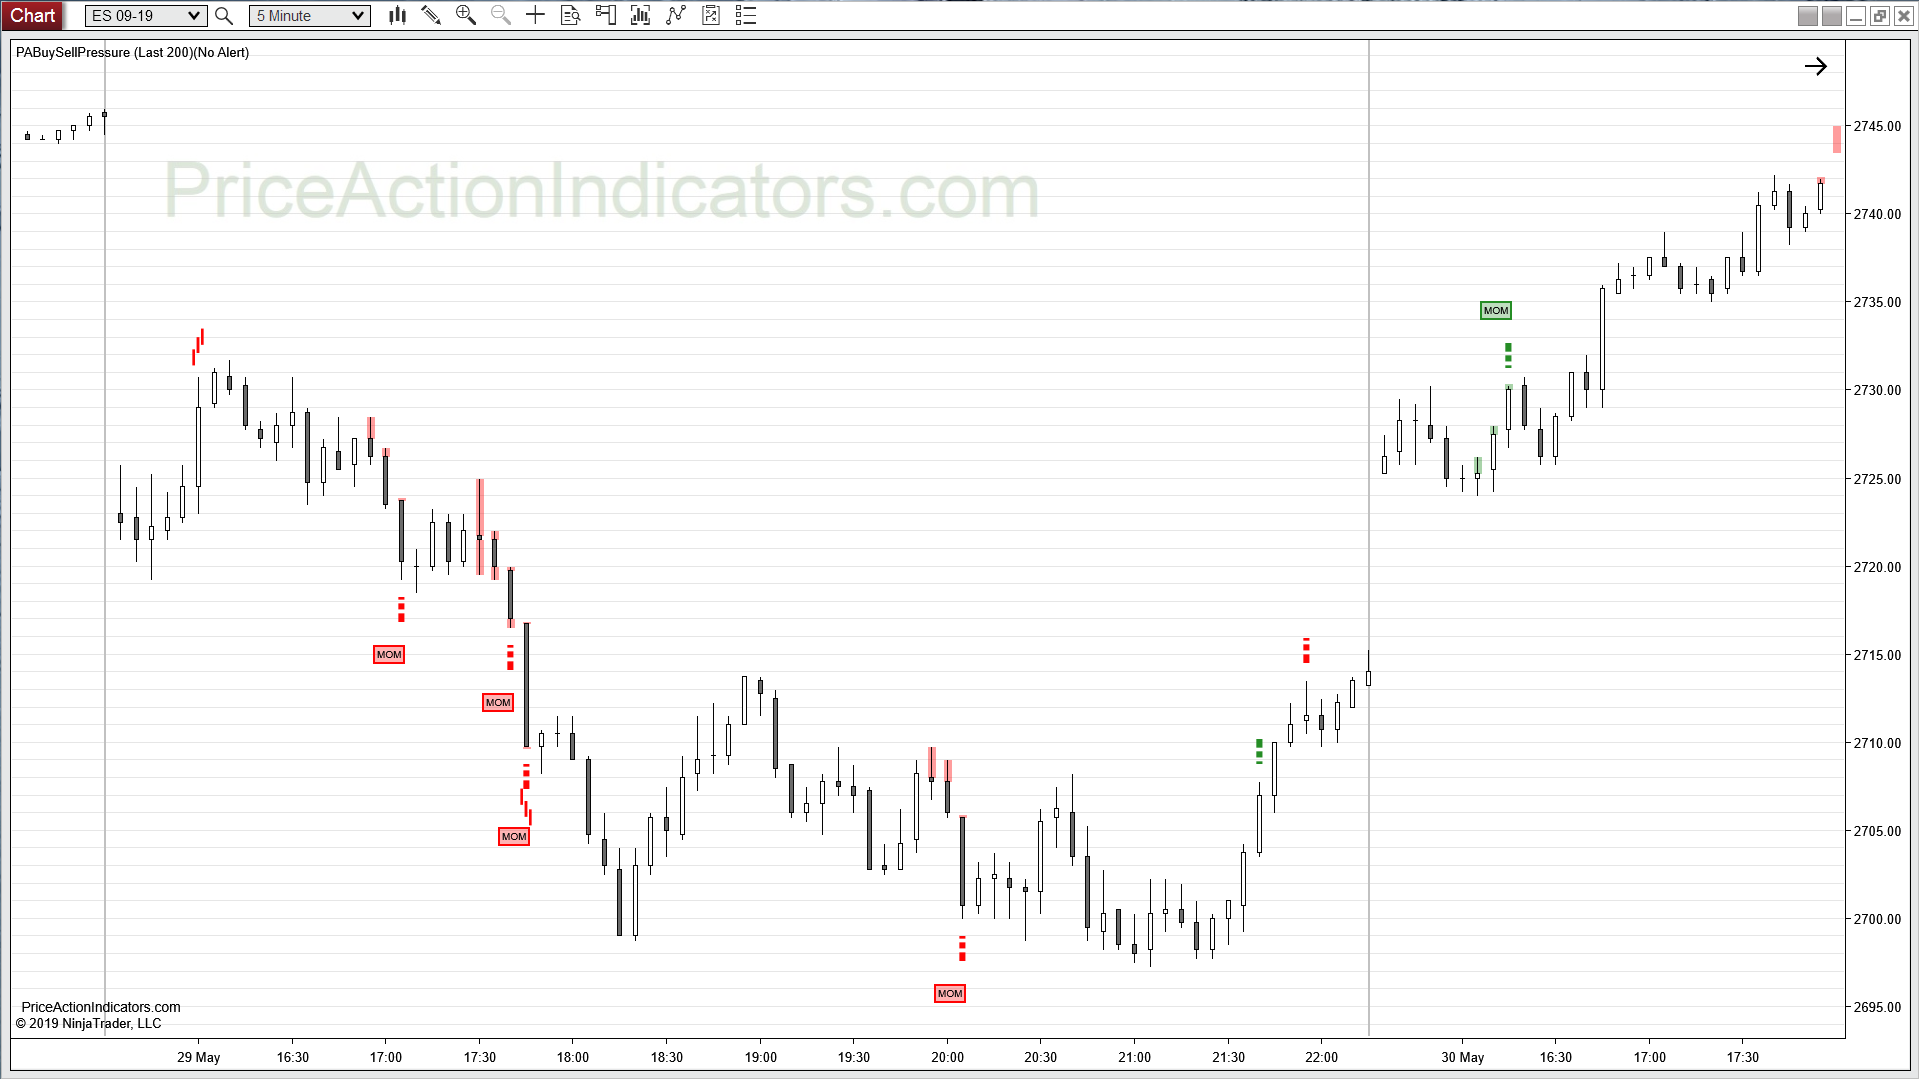 Buy Sell Pressure – Price Action Indicators